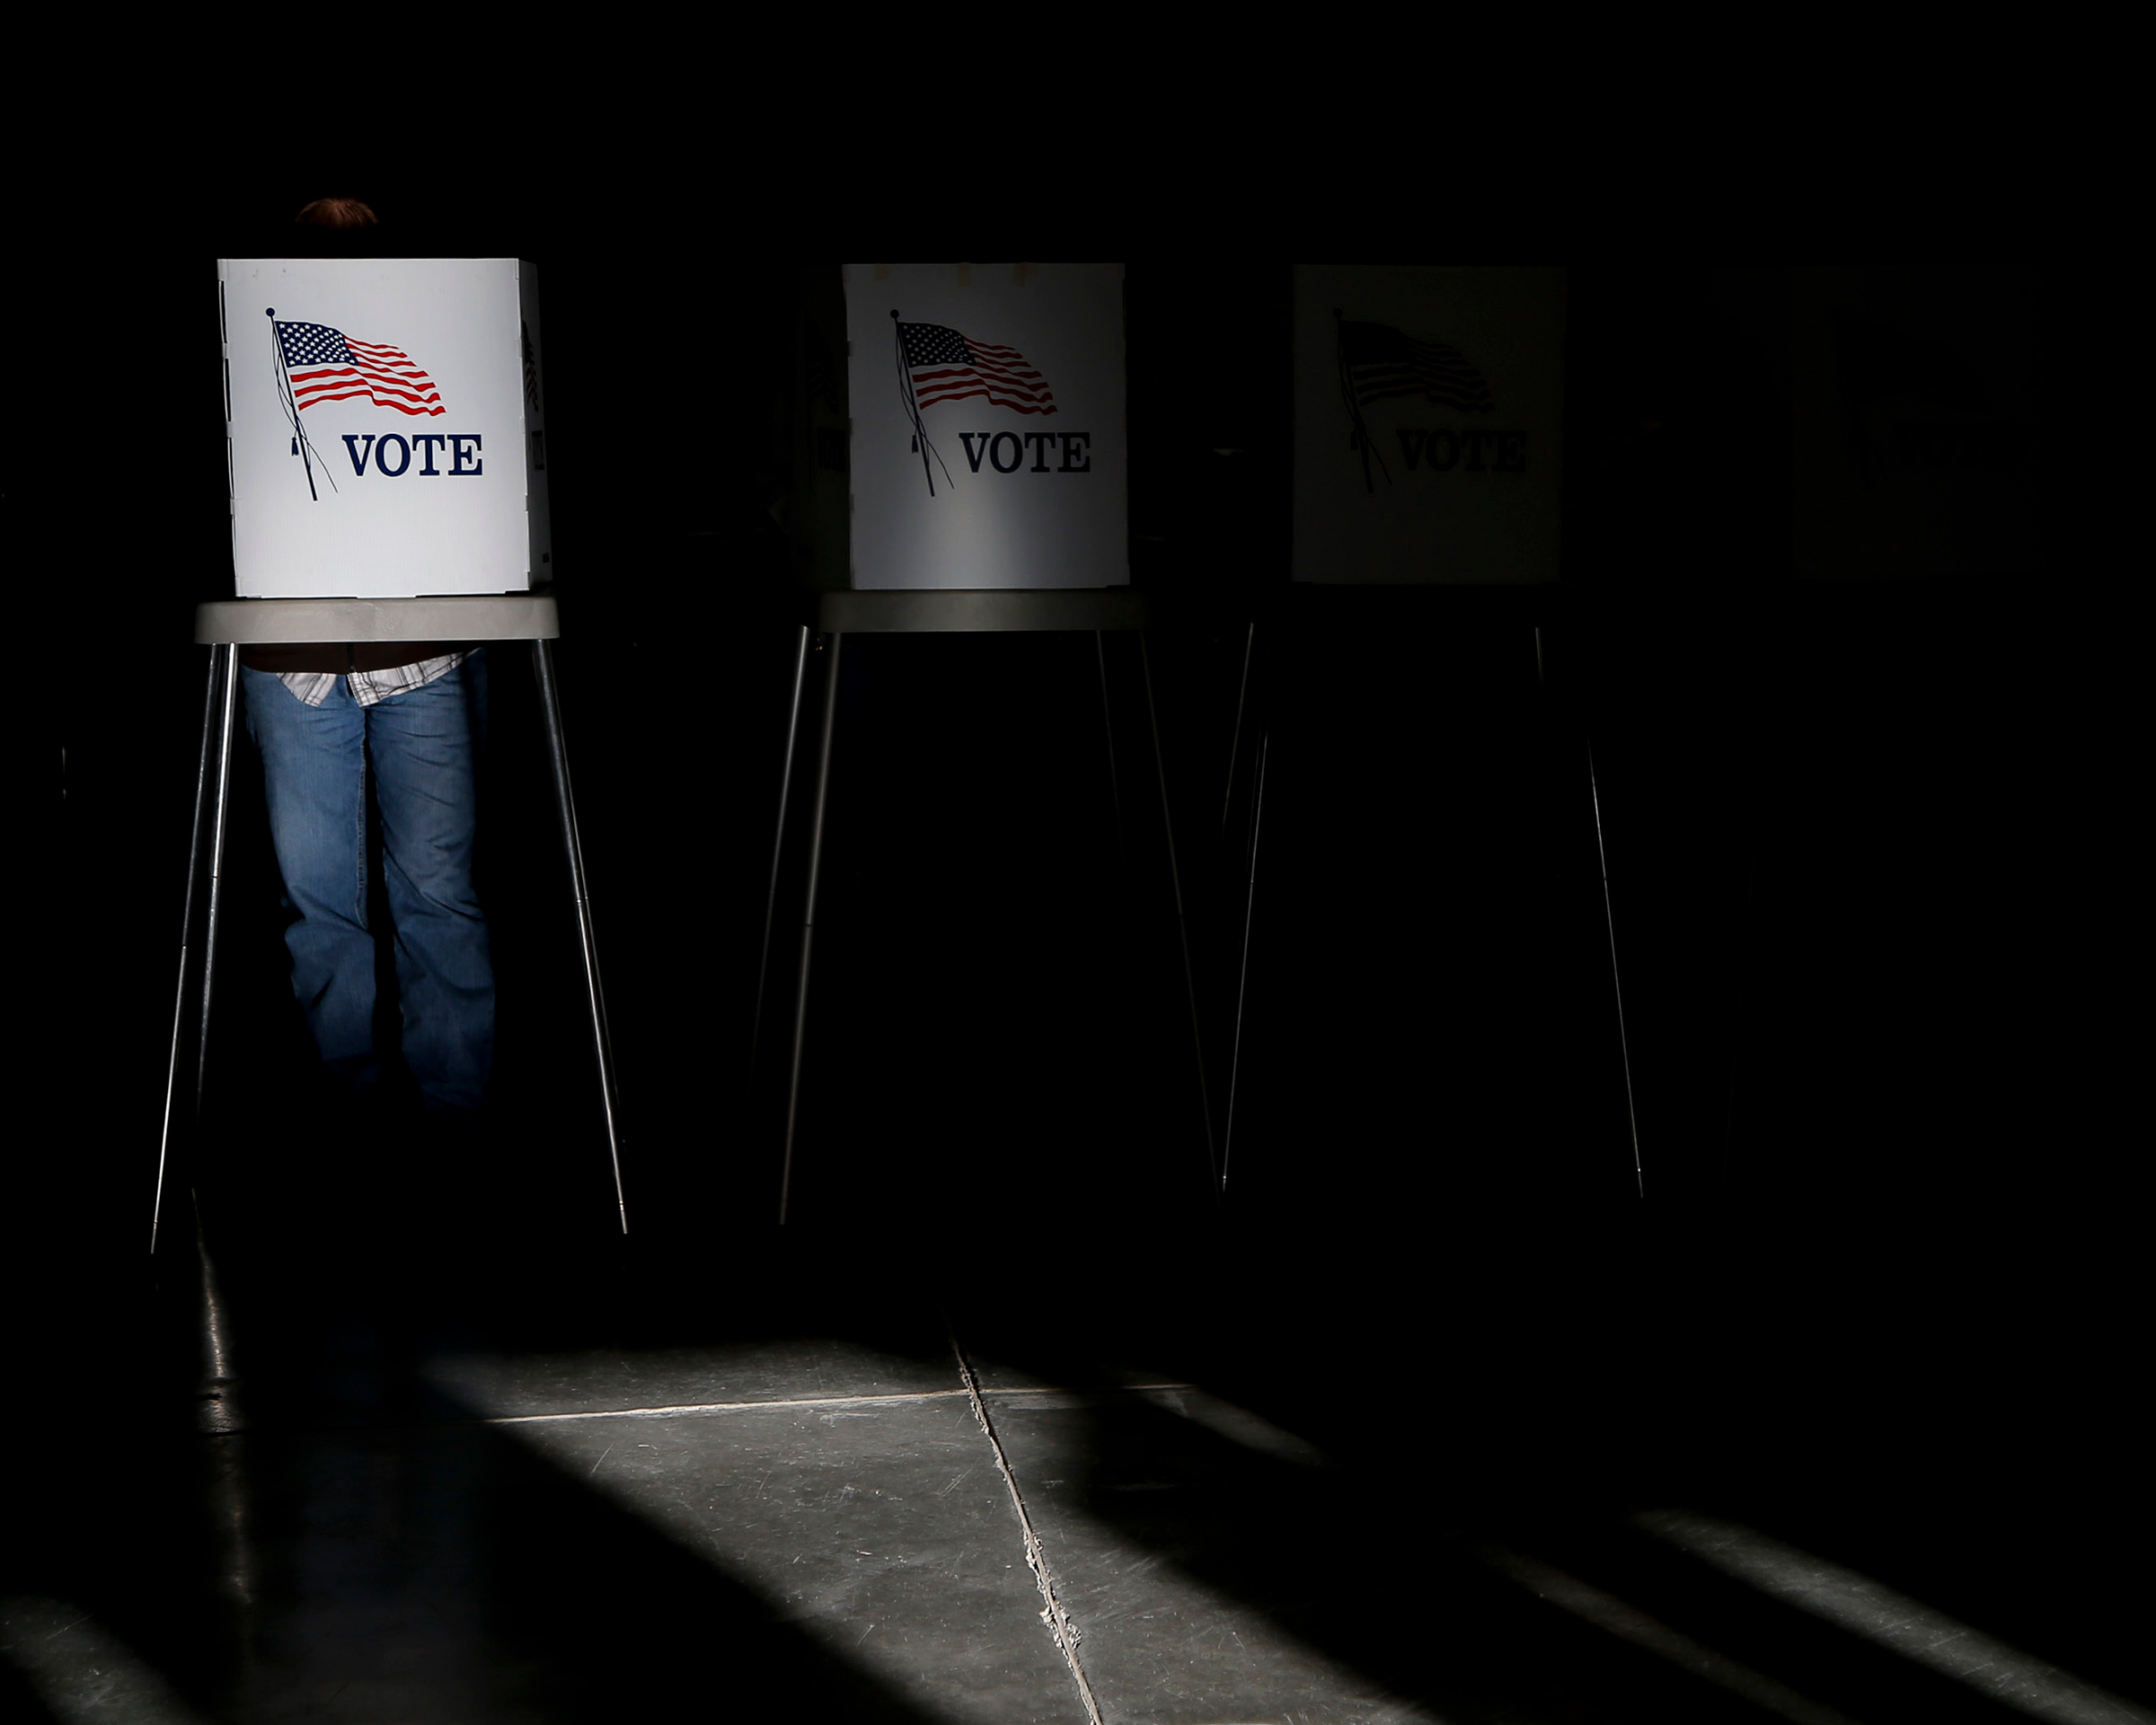 Voting booths are illuminated by sunlight as voters cast their ballots at a polling place.